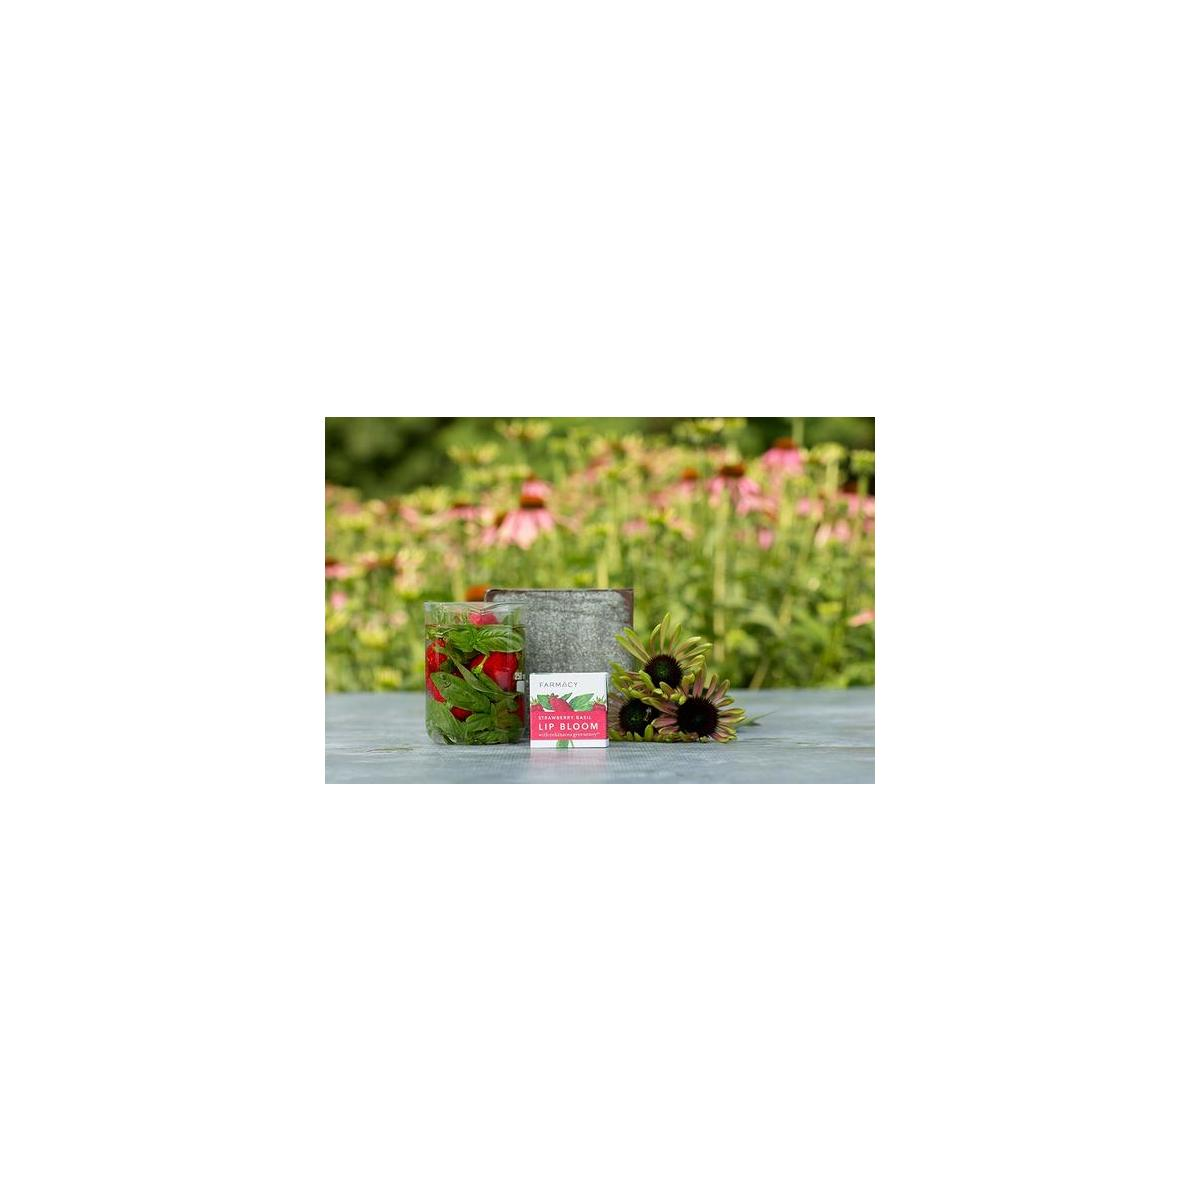 Farmacy Lip Bloom - Soothing Herb-Infused Natural Lip Balm & Gloss